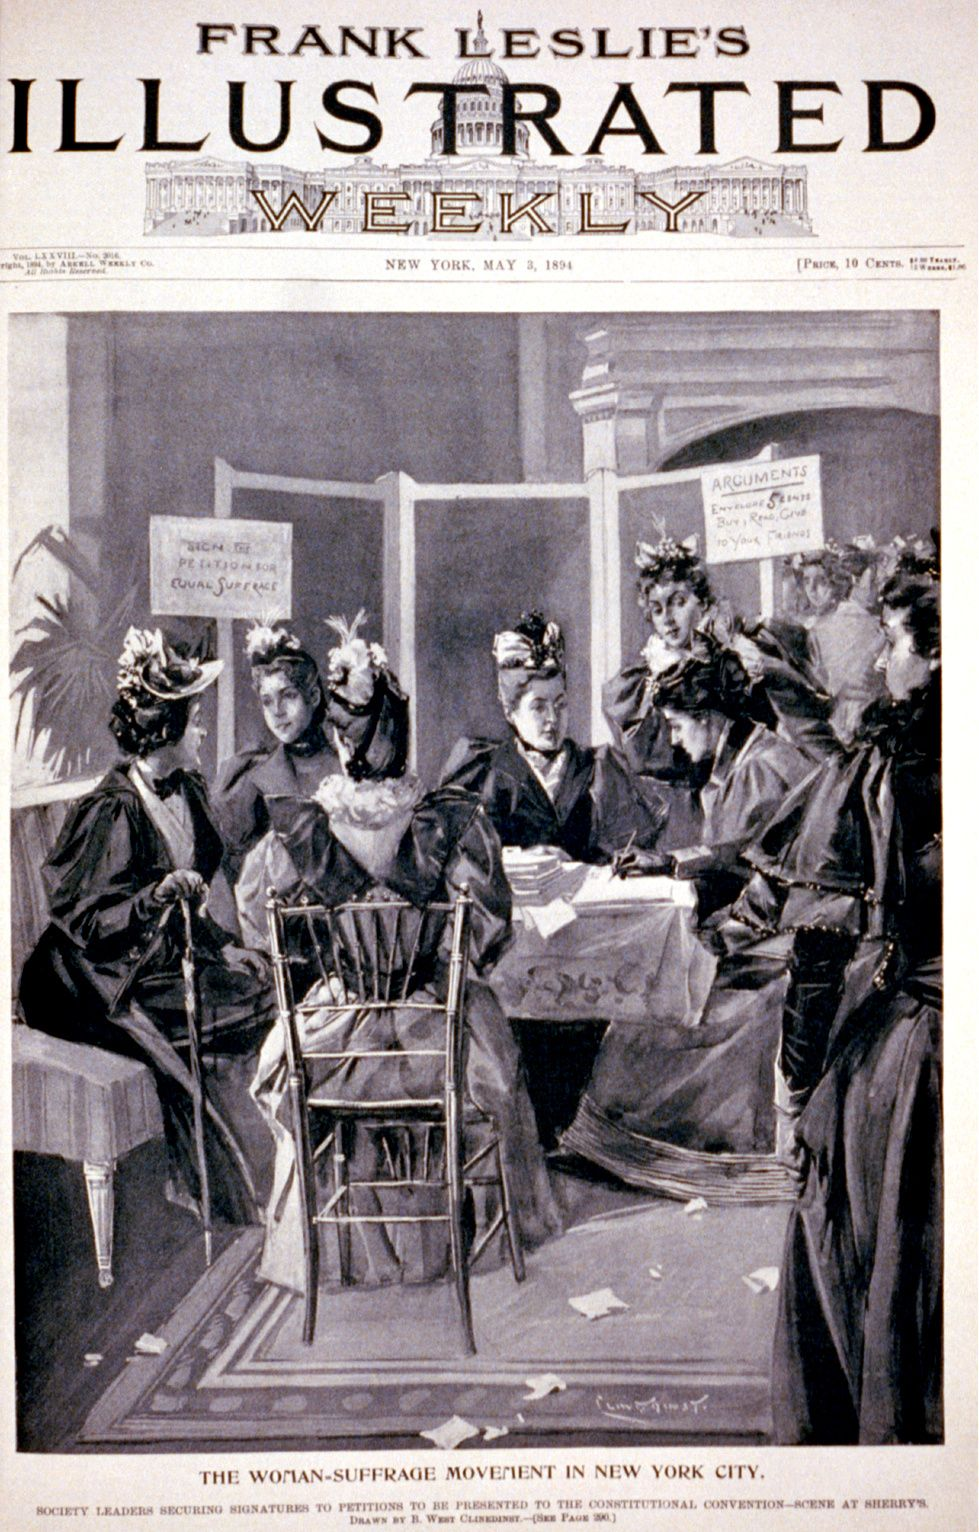 the w suffrage movement in new york city society leaders the w suffrage movement in new york city society leaders securing signatures to petitions to